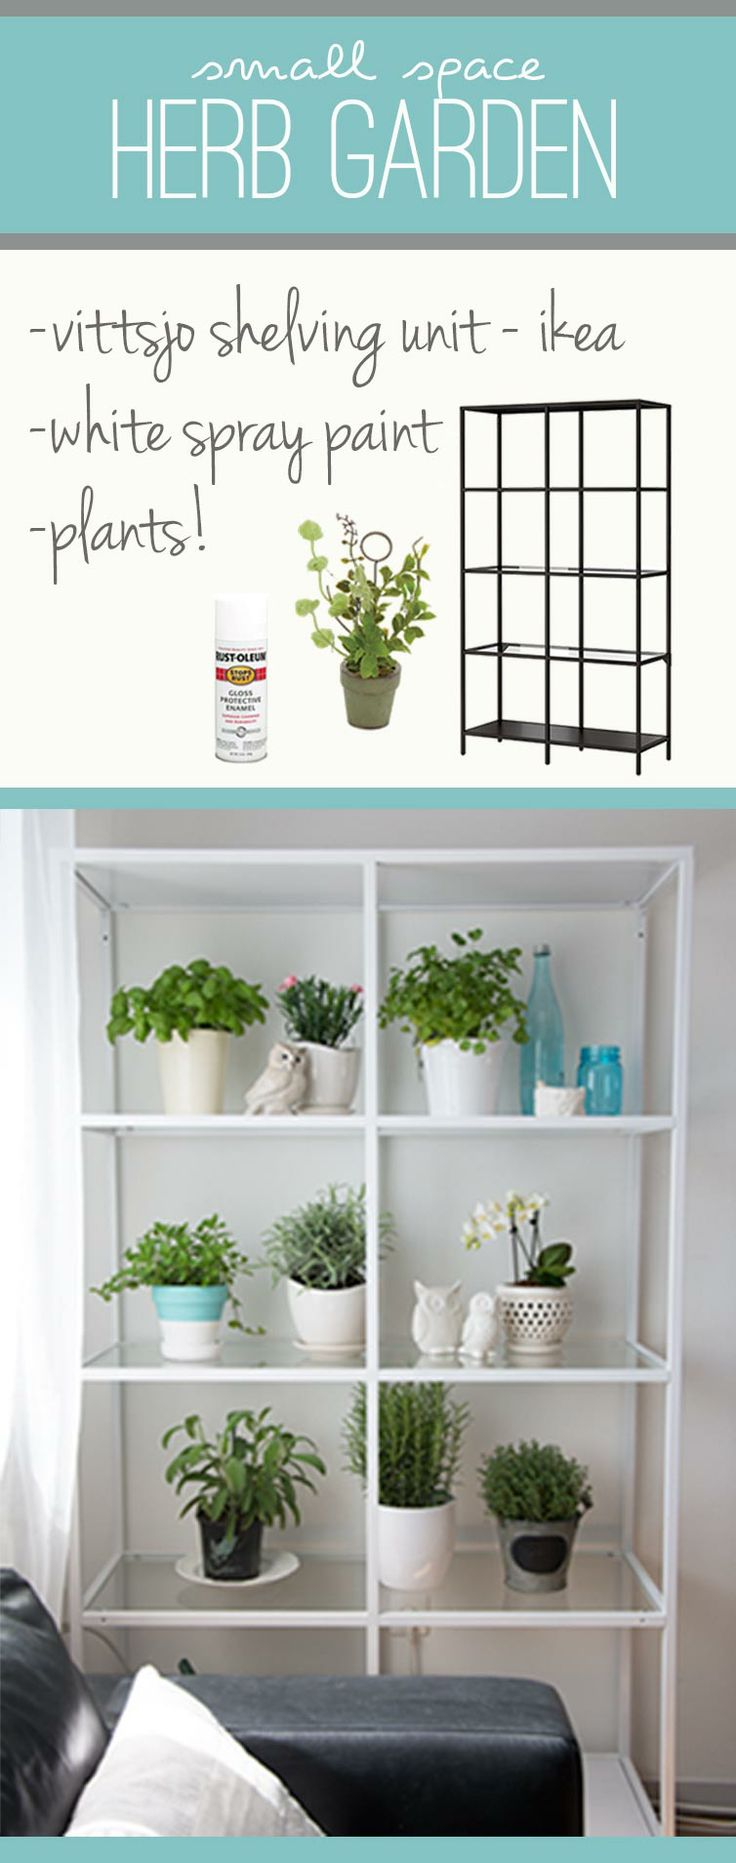 Do you have an indoor or outdoor herb garden? Take a look at thecozycreative.com's makeover to their VITTSJÖ shelving unit, perfect for displaying their carefully selected potted herbs: http://bit.ly/1iFdzir